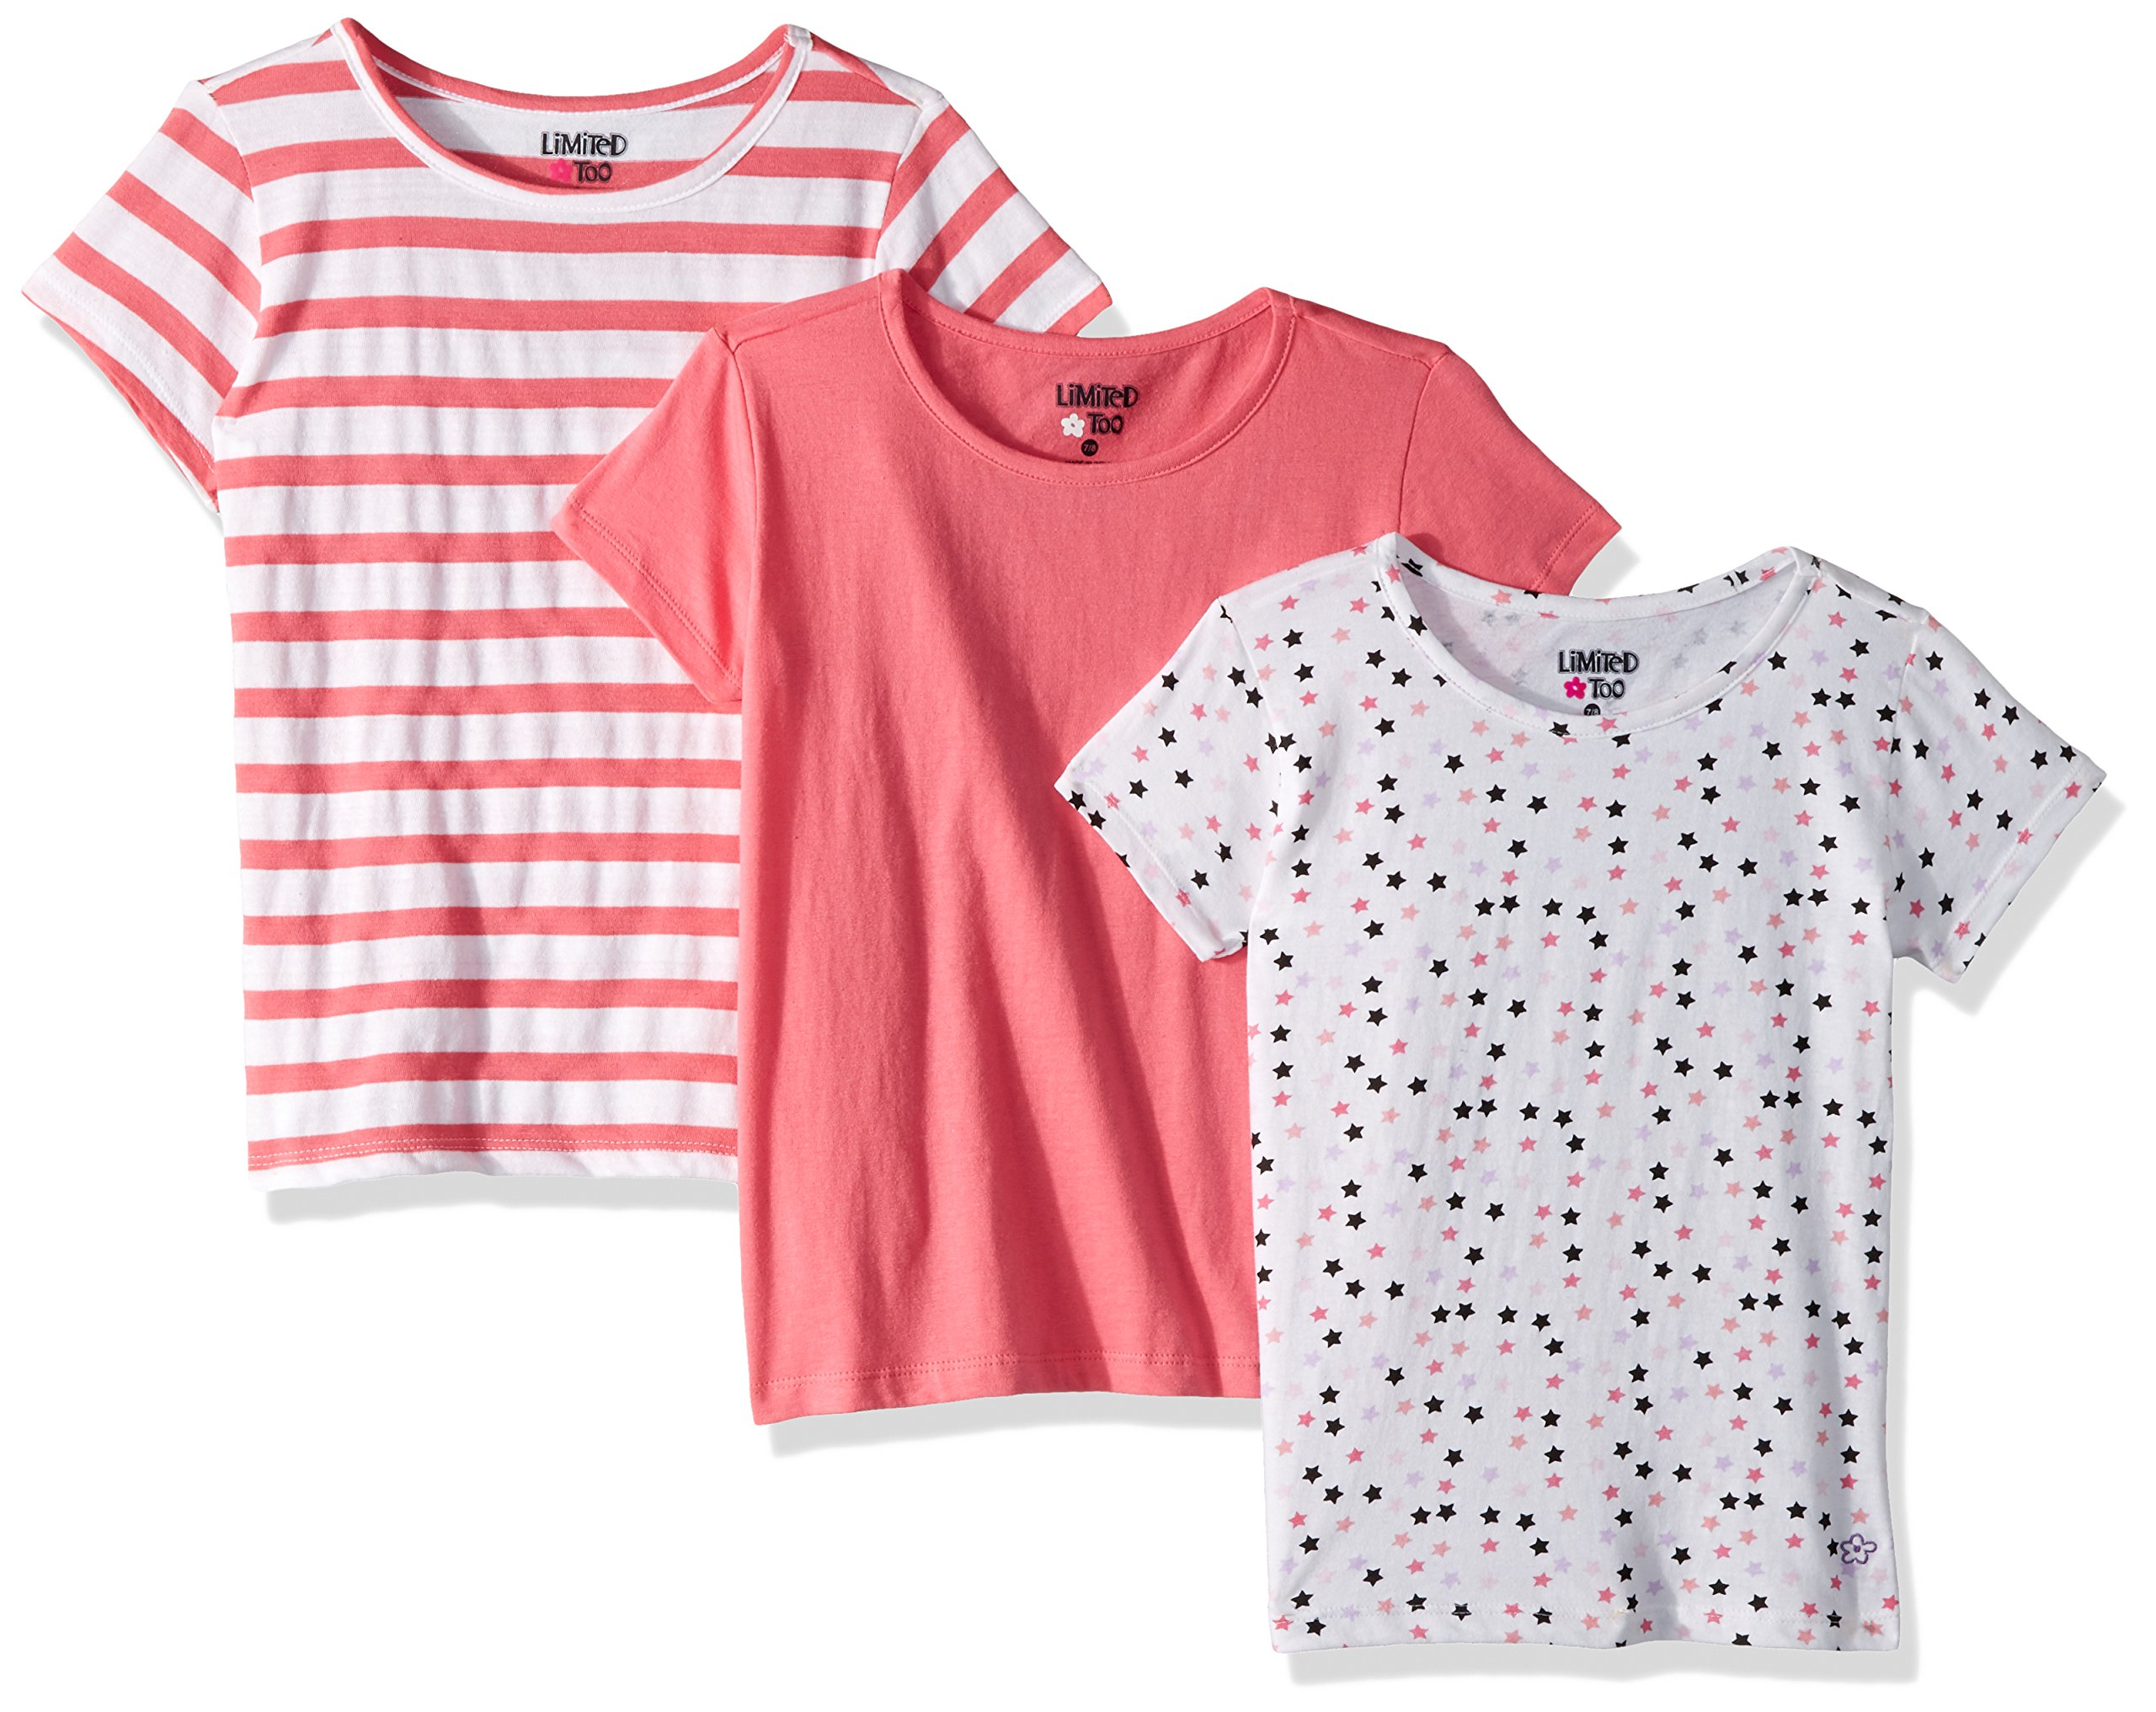 Limited Too Big Girls' 3 Pack T-Shirt, Pack Stars Stripes Pink Solid Multi Print, 7/8